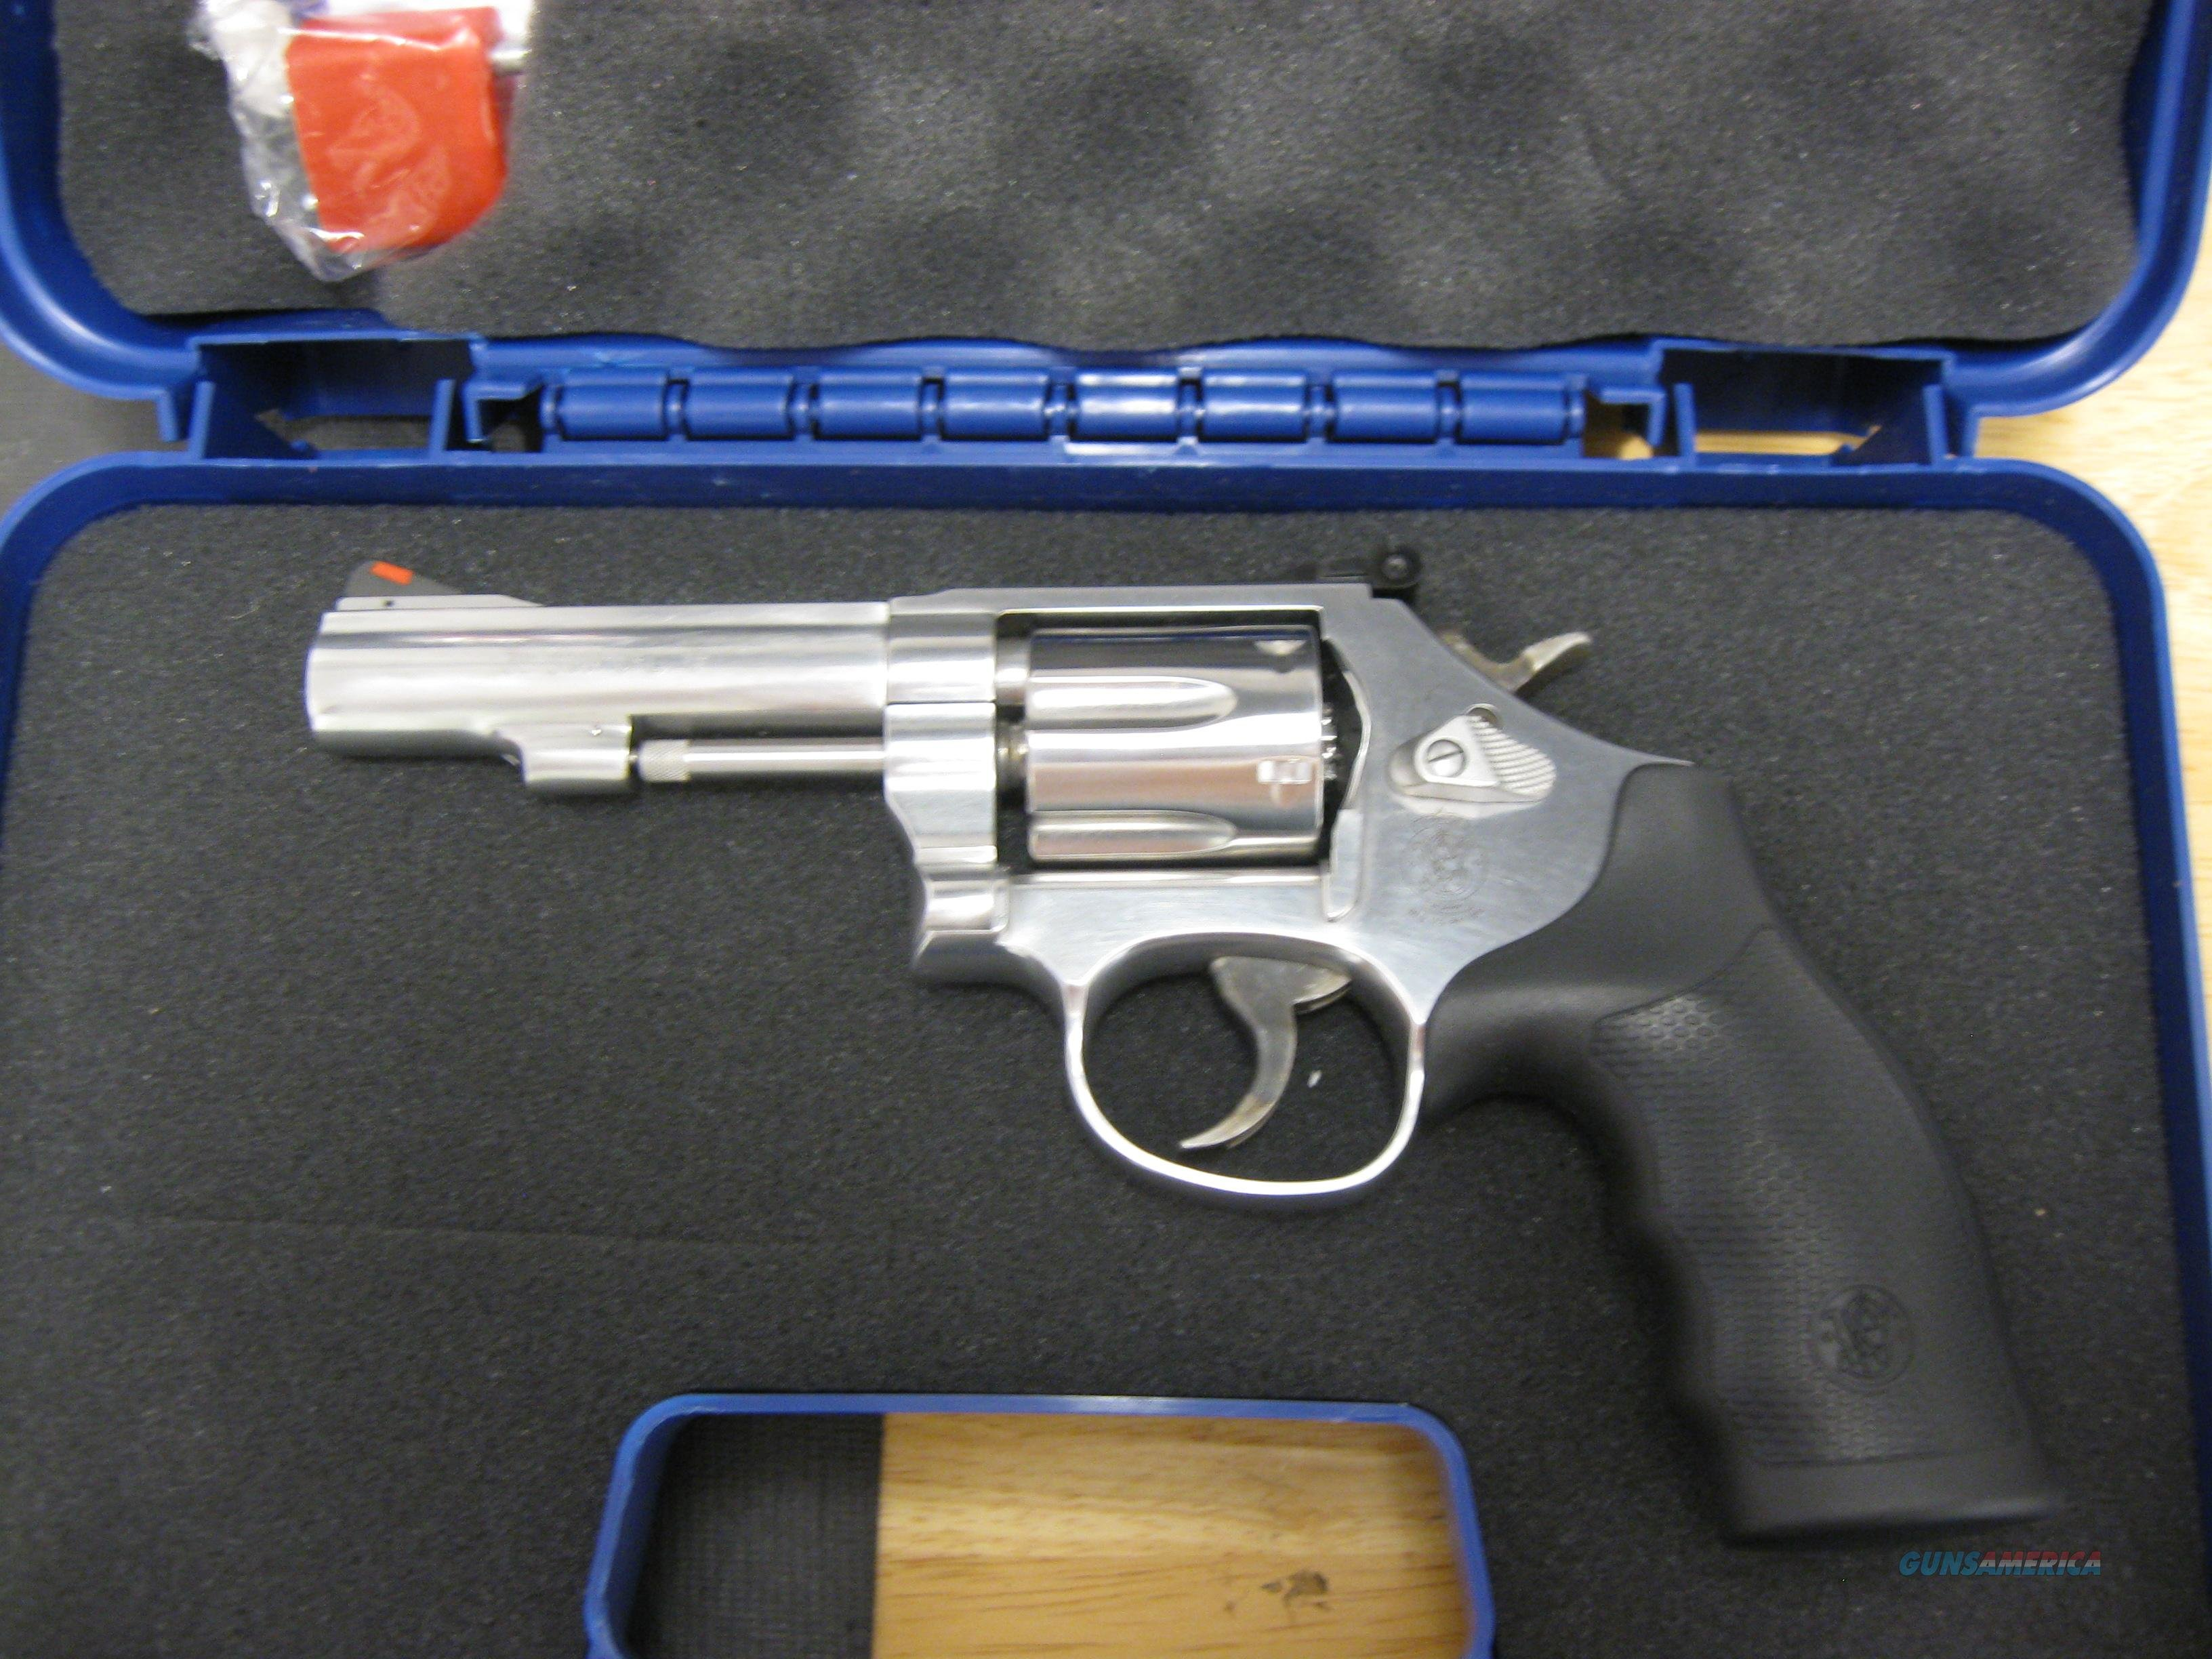 "Smith & Wesson 67 Revolver 162802, 38 Special, 4"", Rubber Grip, Stainless Finish, 6 Rd, Red Ramp Sights  Guns > Pistols > Smith & Wesson Revolvers > Full Frame Revolver"